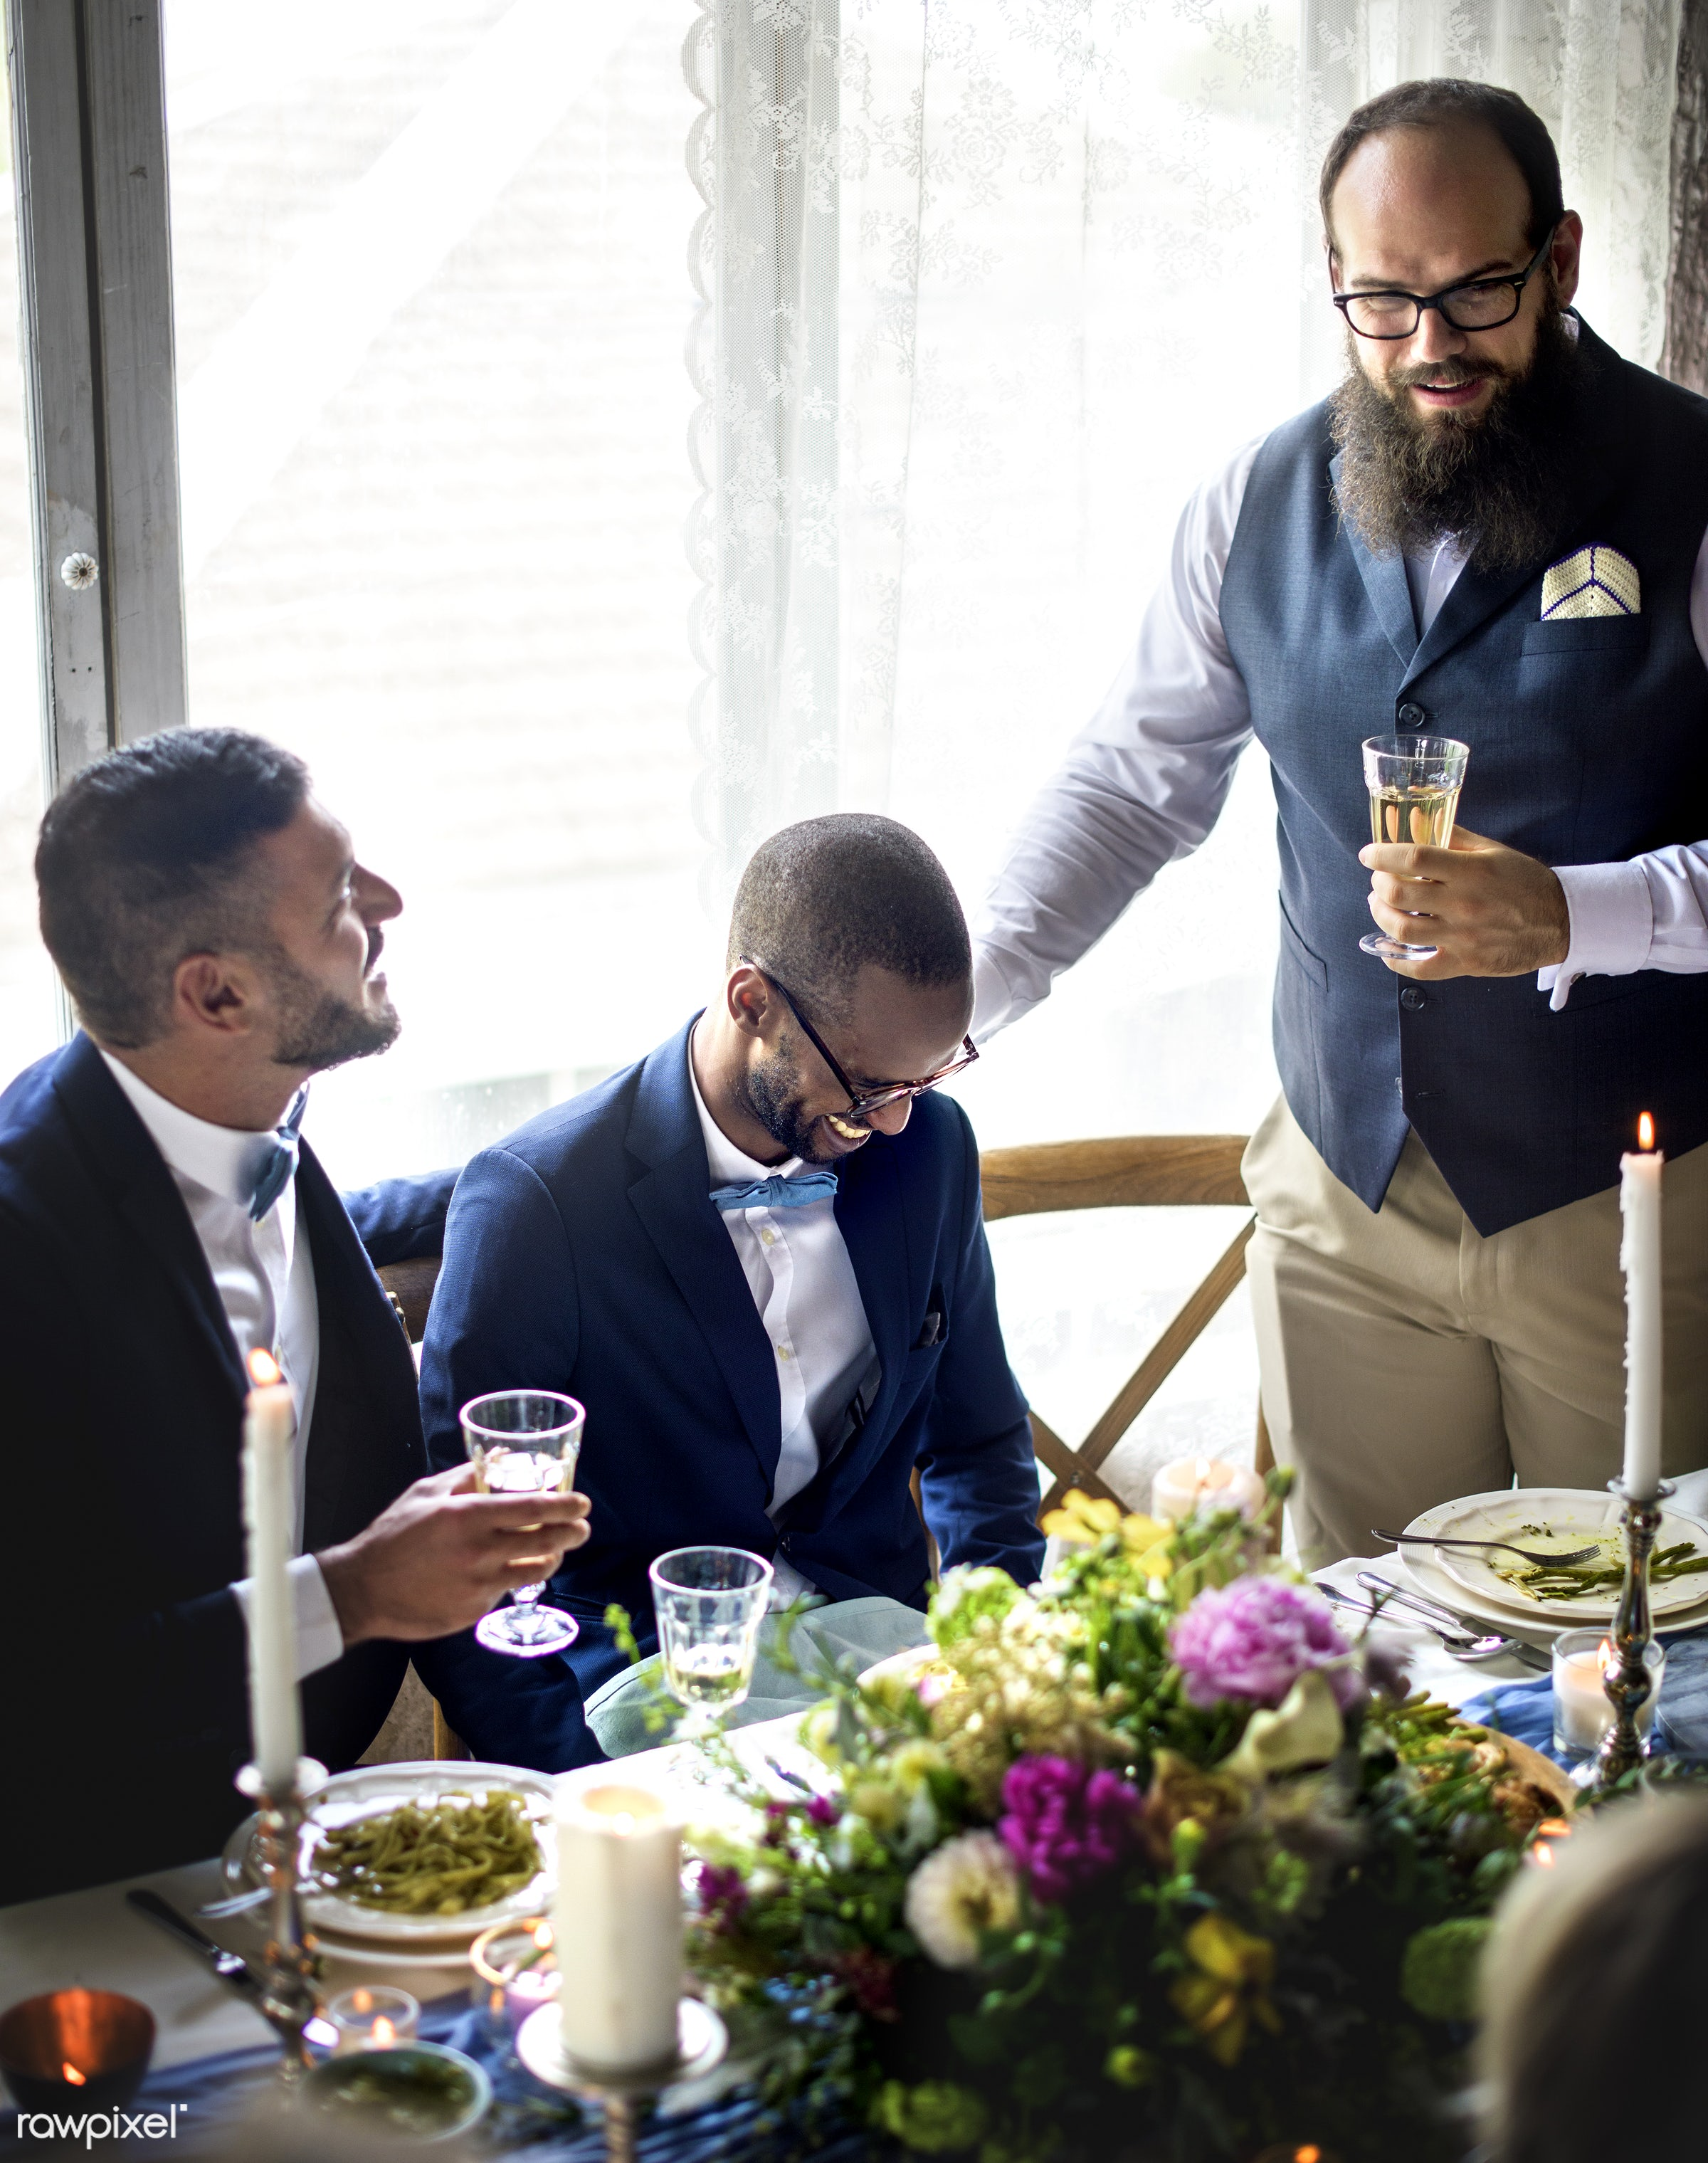 glasses, holding, occasion, congratulations, people, together, love, friends, congrats, hands, gather, drink, banquet,...